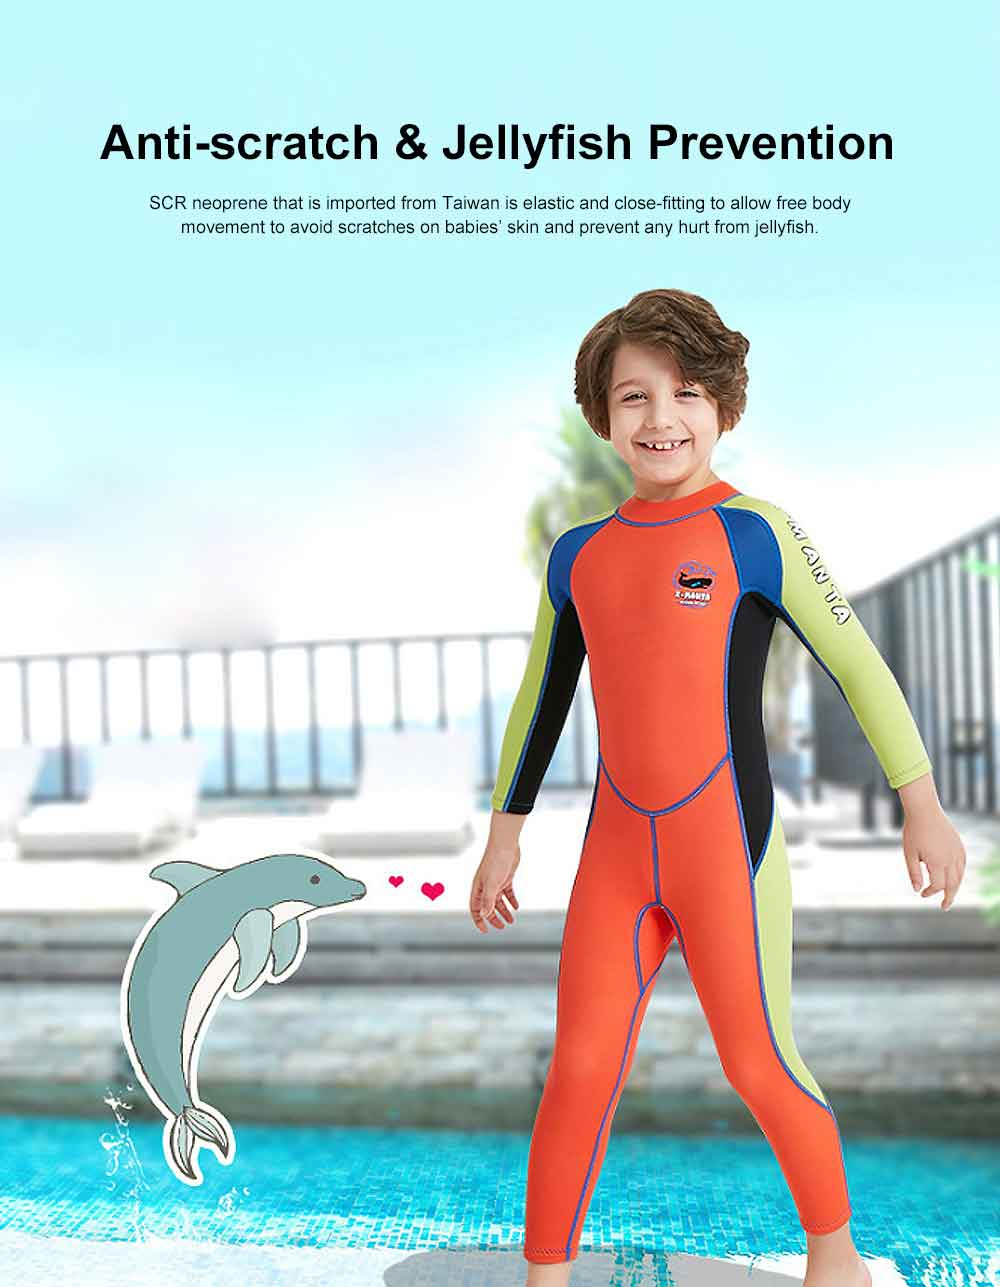 One-piece Boy Diving Suit, Long Sleeve Diving Clothes for Boys, Sunblock Swimsuits Snorkeling 2019 Spring Surfing Swimwear 3